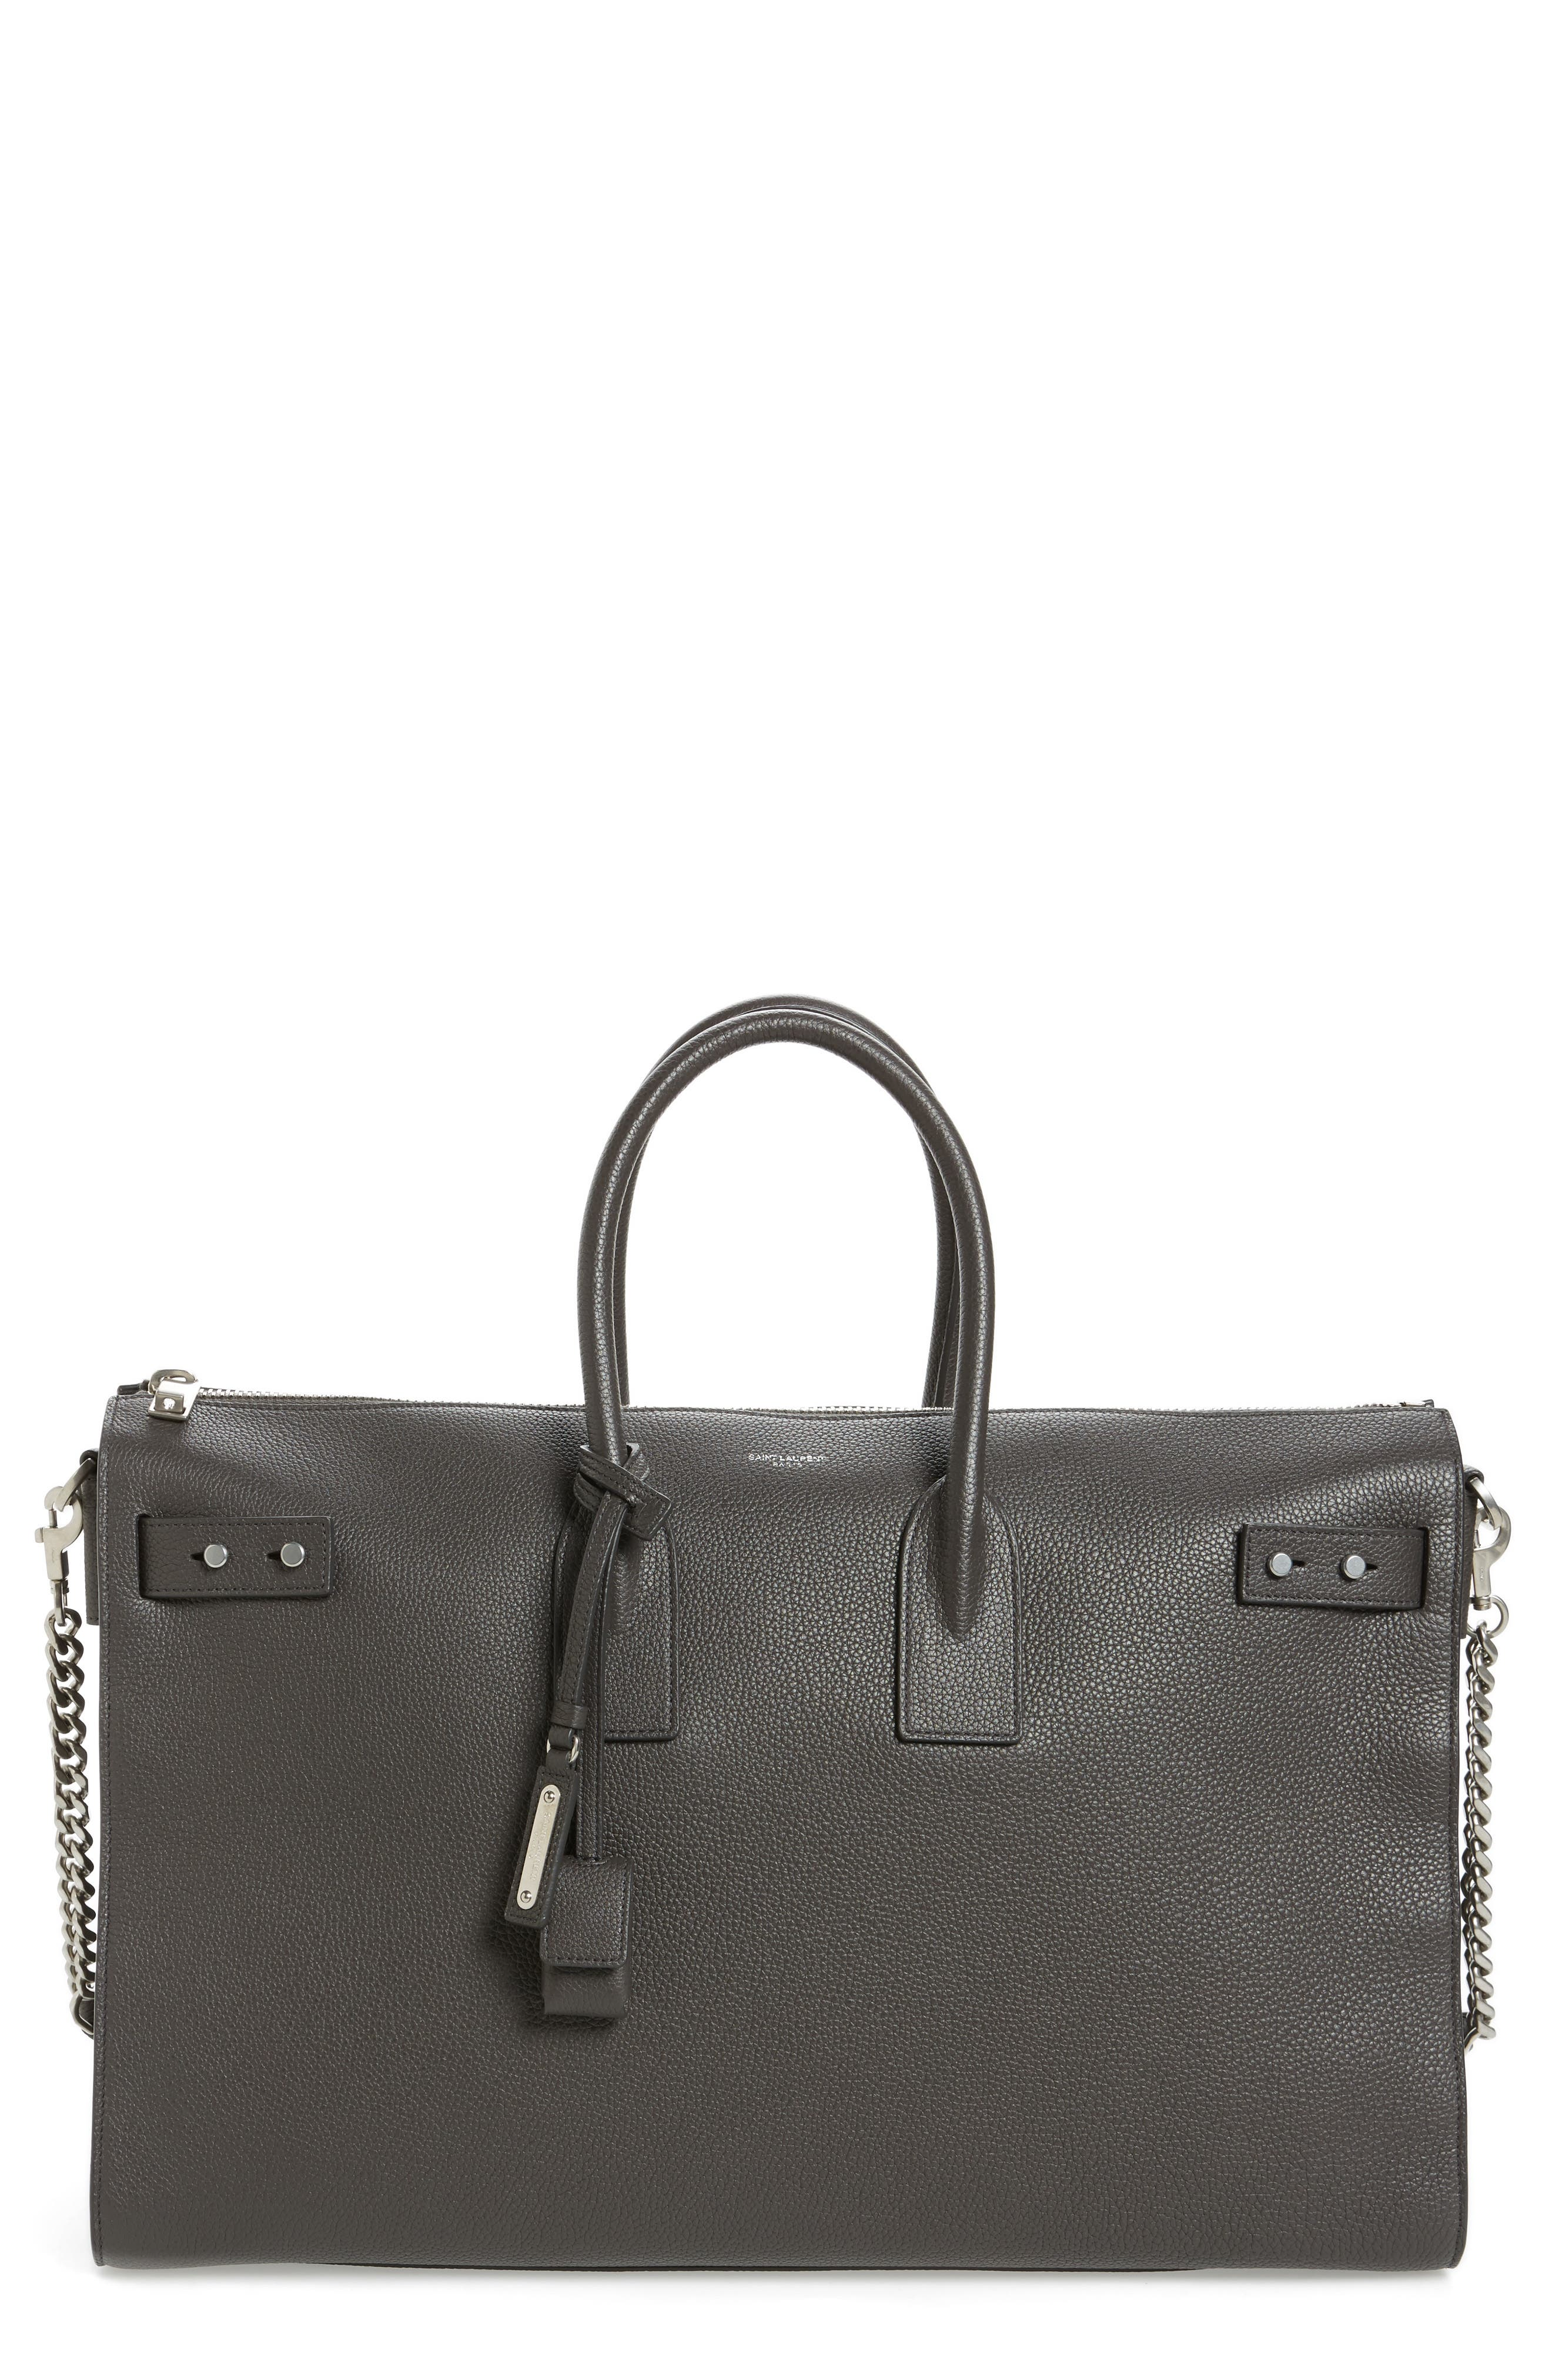 Saint Laurent Large Sac du Jour Leather Duffel Tote